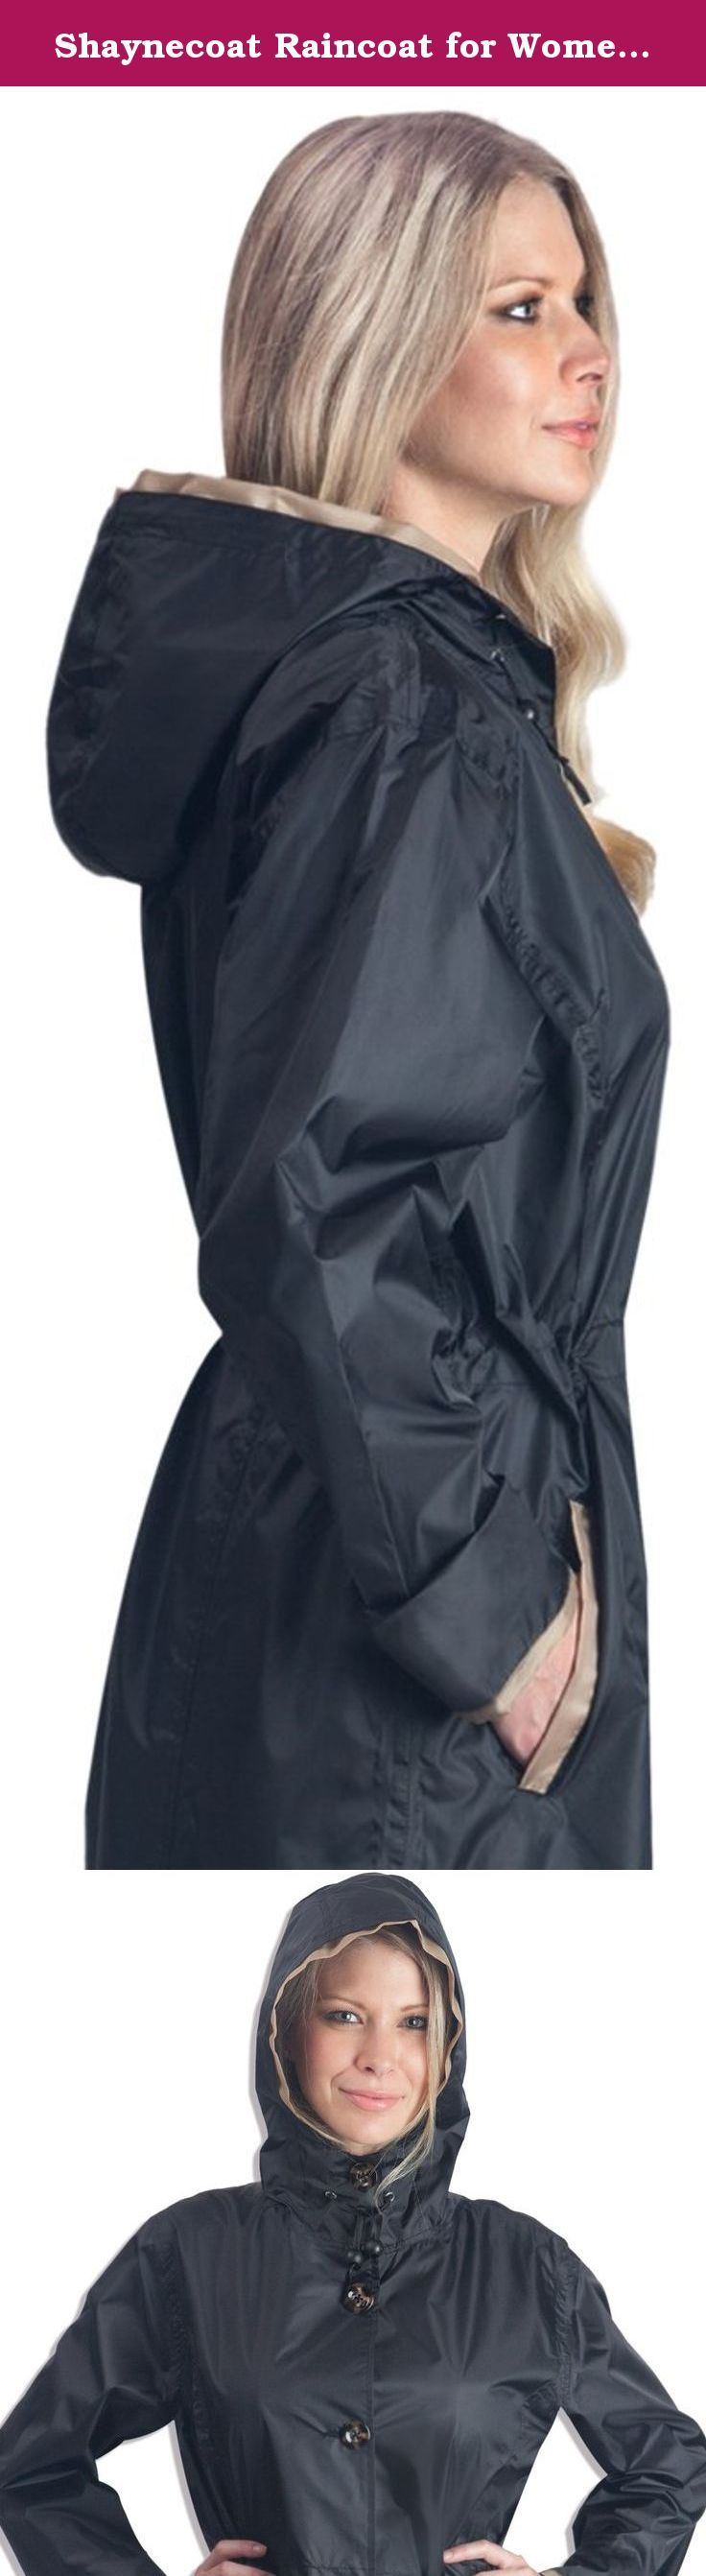 Shaynecoat Raincoat for Women Black and Gold (XL). Brand new design! Beautiful black fabric with gold accents on hood and pockets. Look good stay dry, The one and only Shaynecoat for women, A full length raincoat to keep you dry from head to toe, An adjustable waist for a more fashionable look. 100% waterproof!.